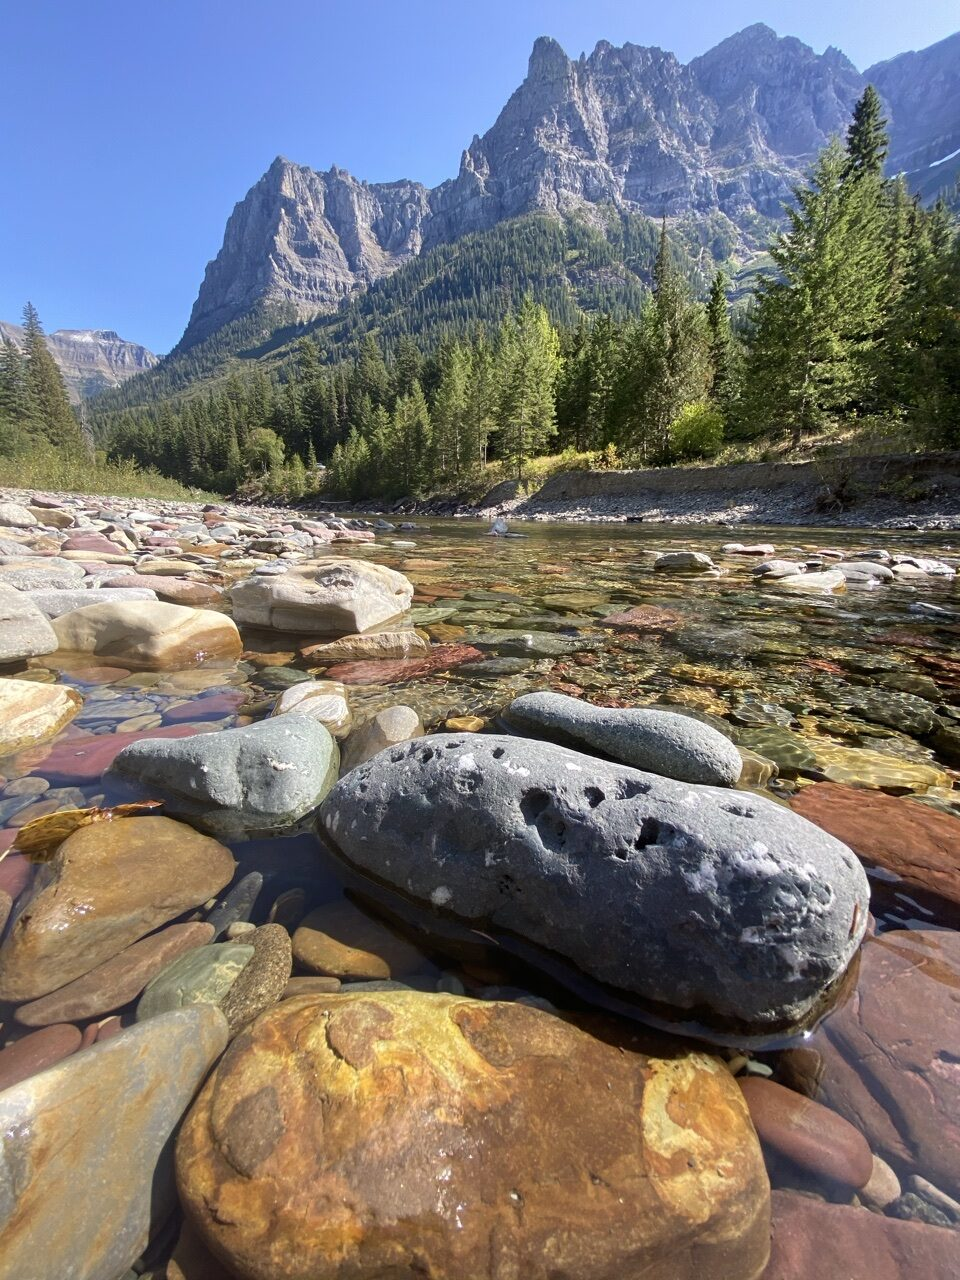 river bed in mountains